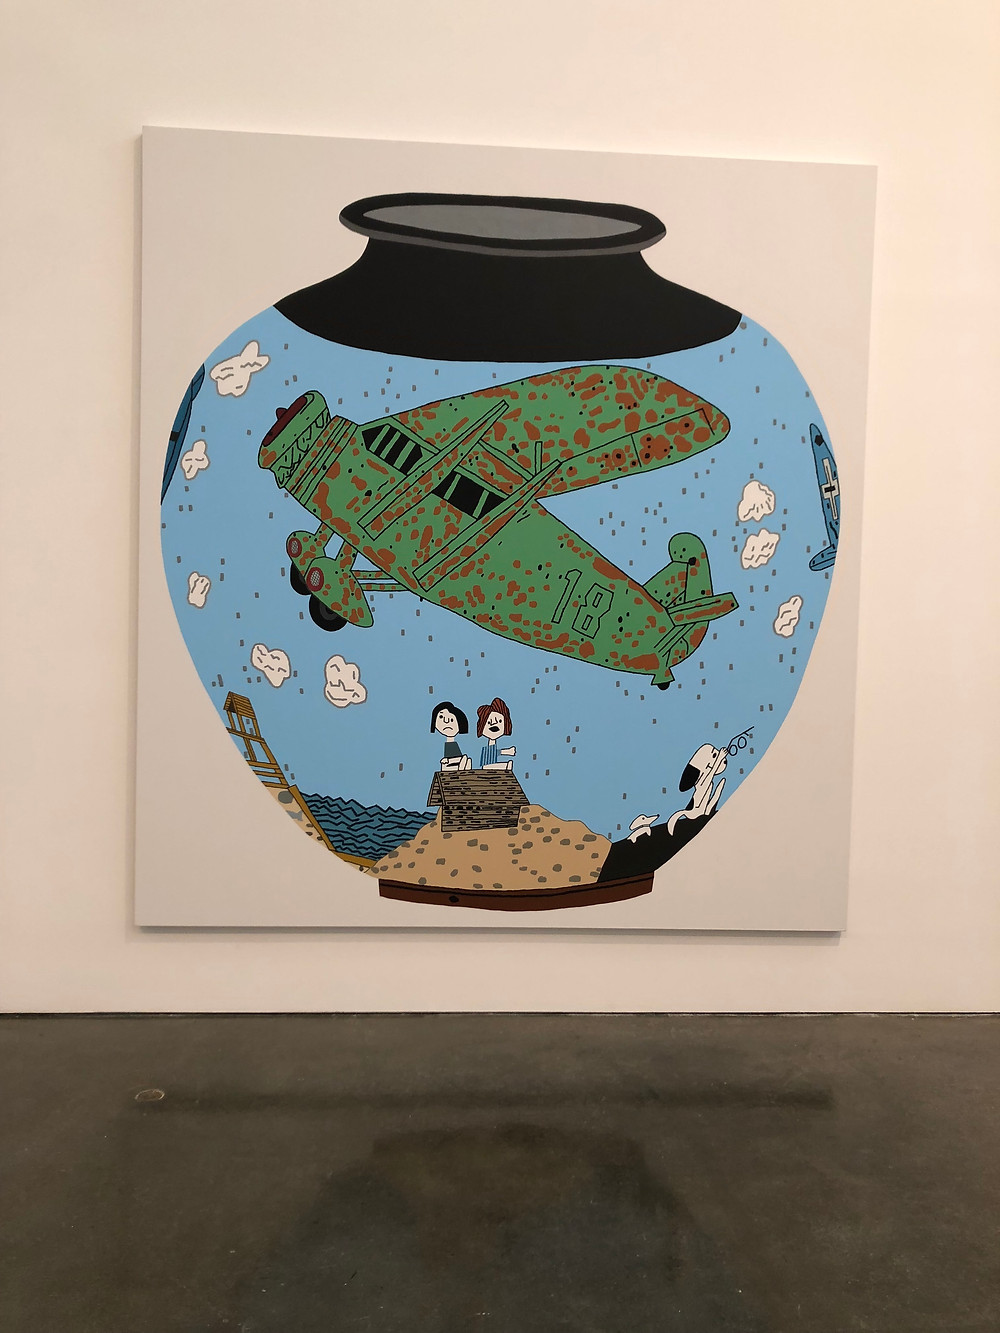 Pot painted with Snoopy and Peanuts characters by Jonas Wood.